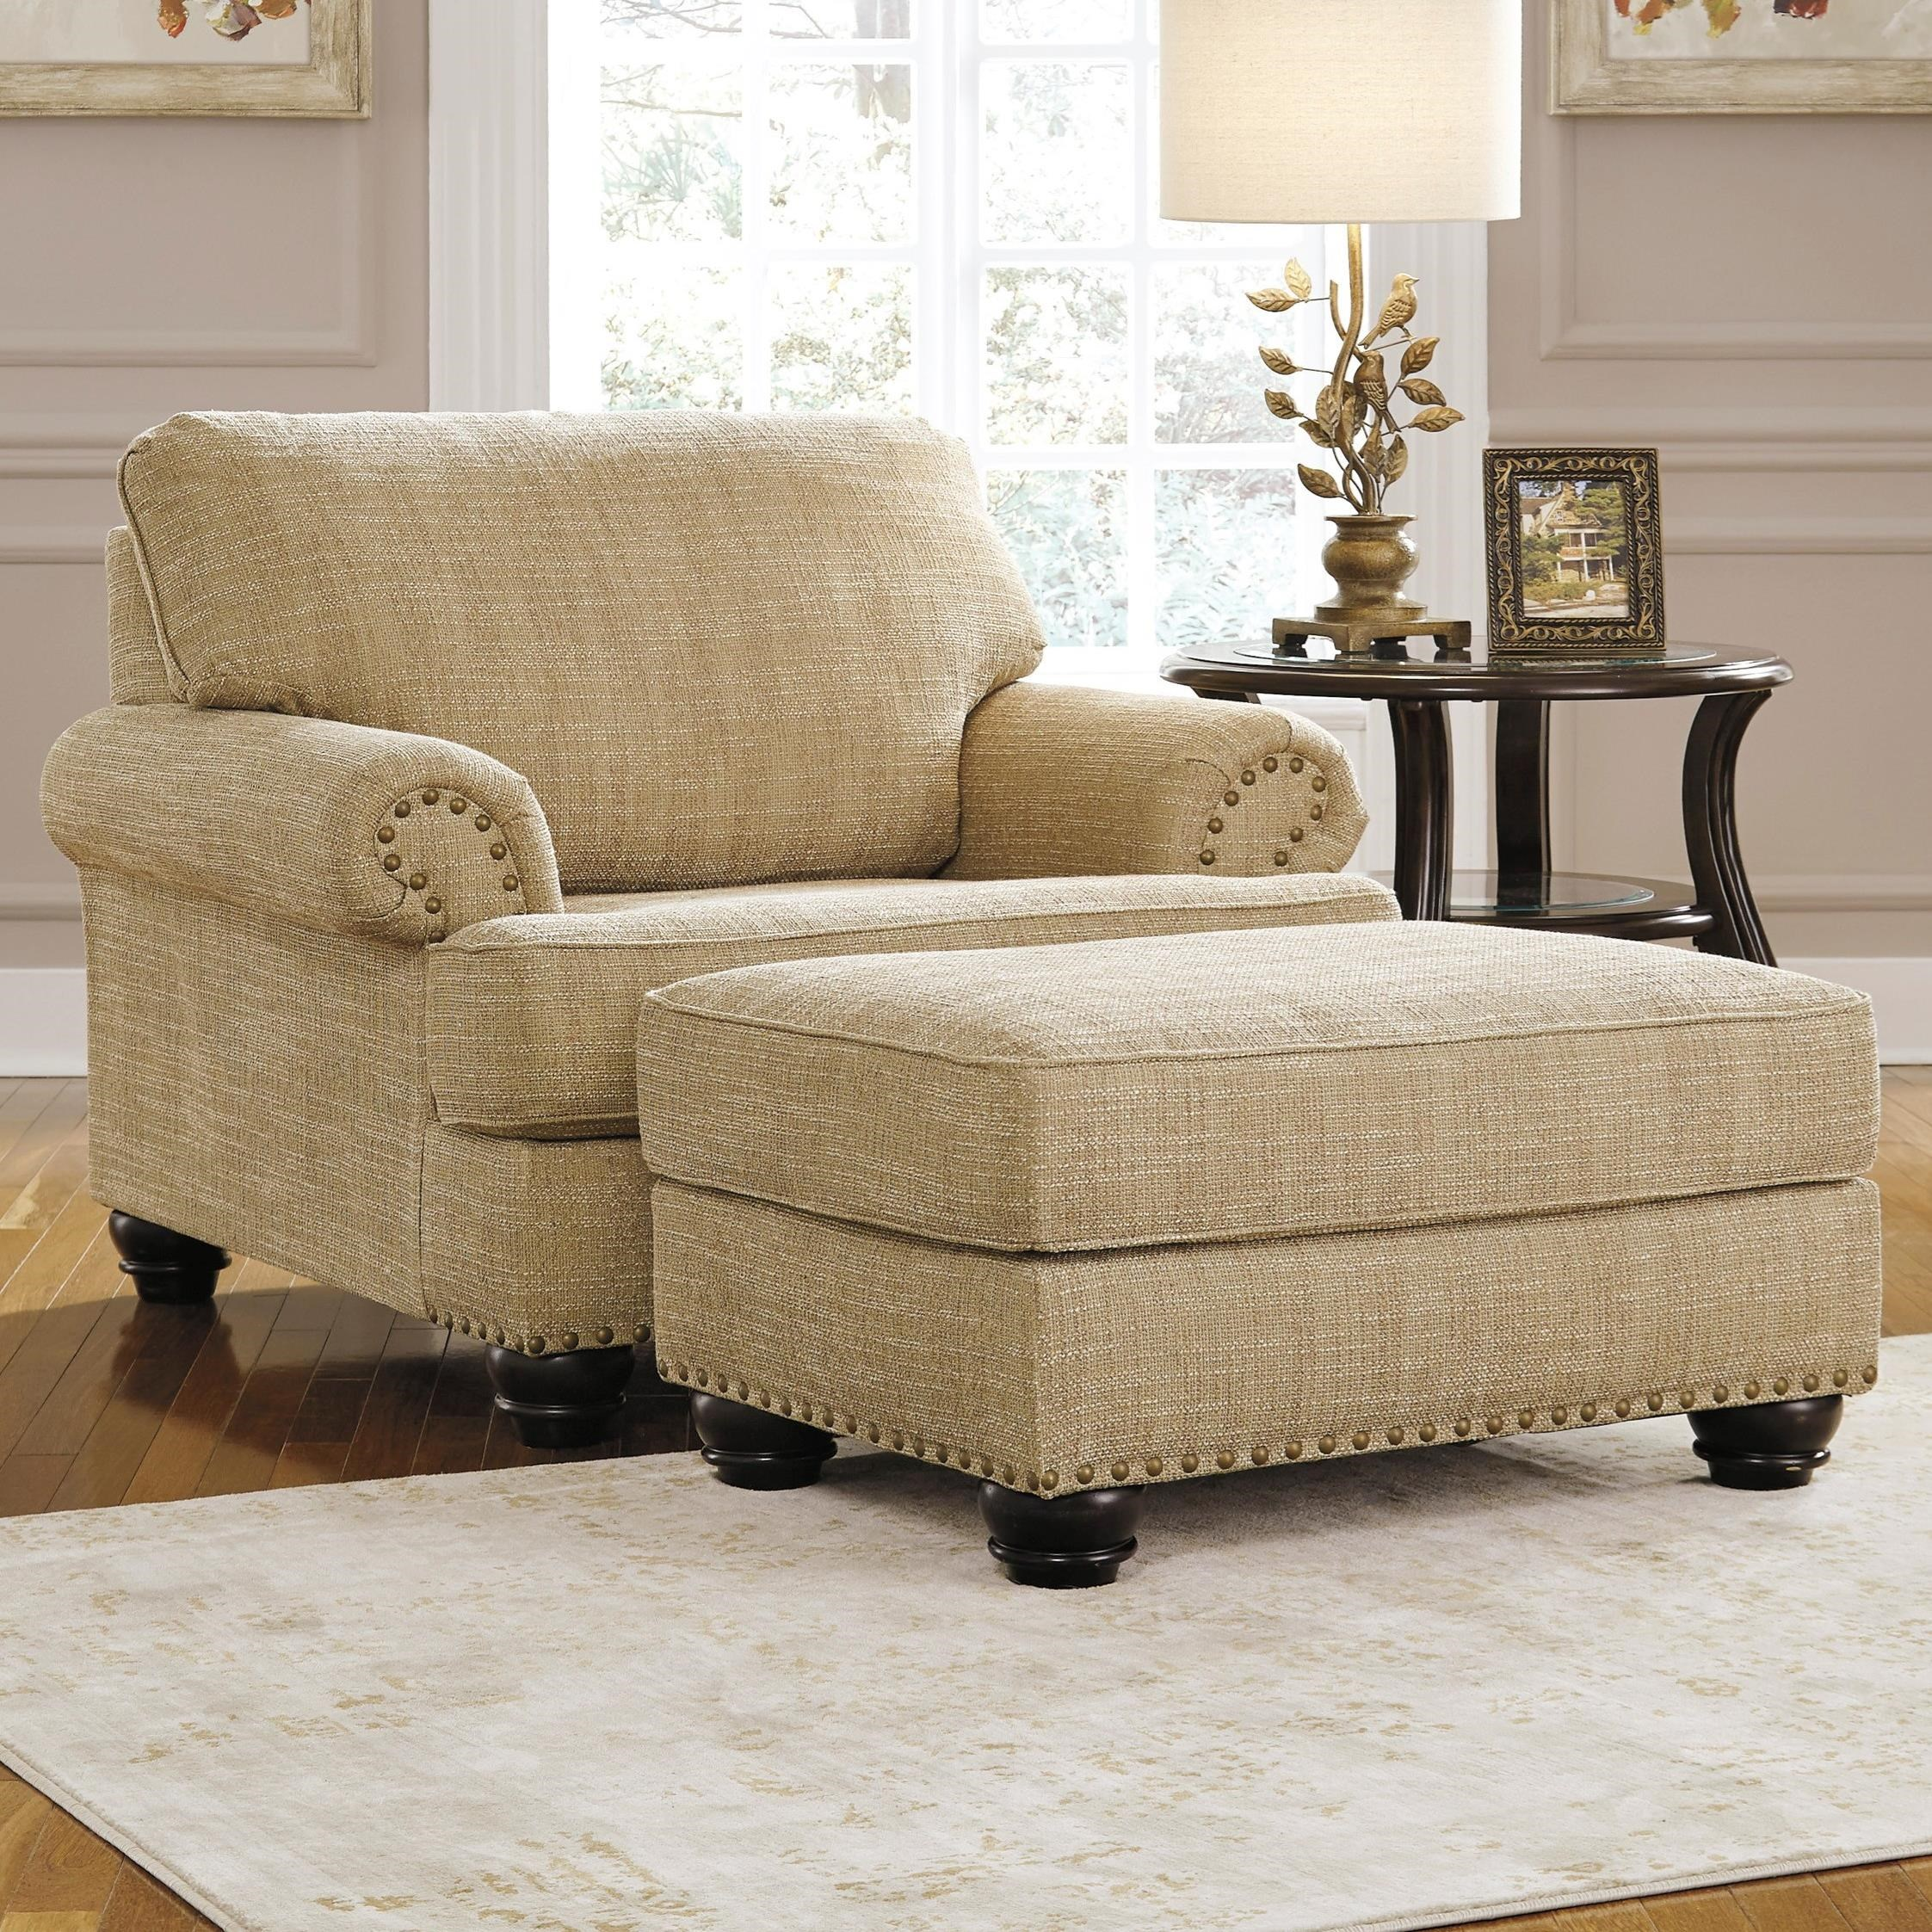 Benchcraft Candoro Chair And A Half Ottoman Value City Furniture Chair Ottoman Sets